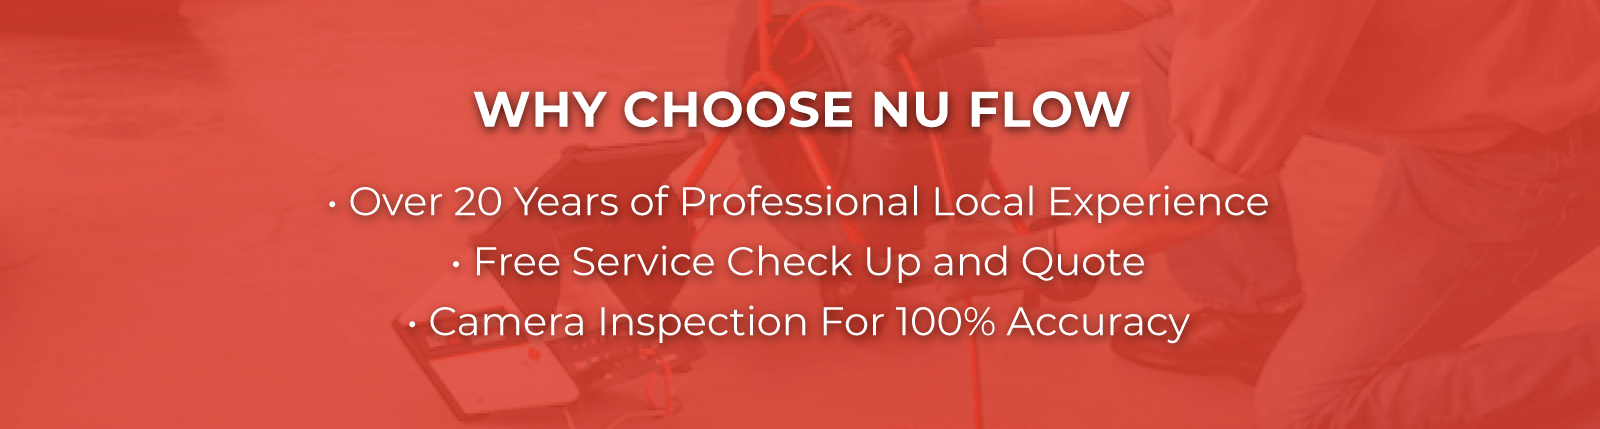 nu flow oklahoma sewer repair 1 Drain Cleaning In Tulsa, Oklahoma